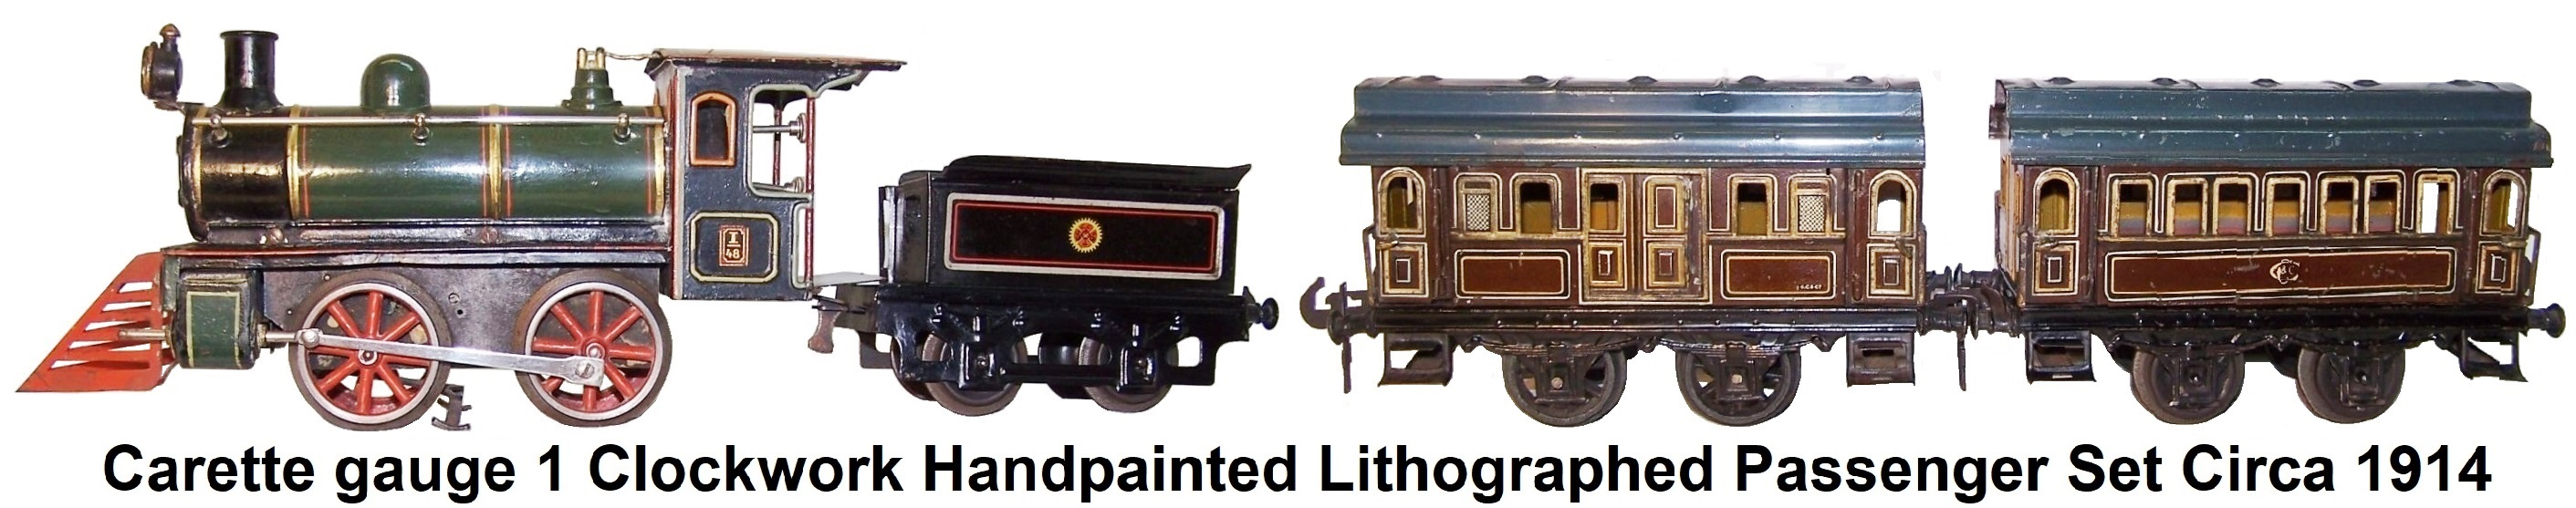 Carette 1 gauge Clockwork Handpainted and Lithographed passenger set circa 1914